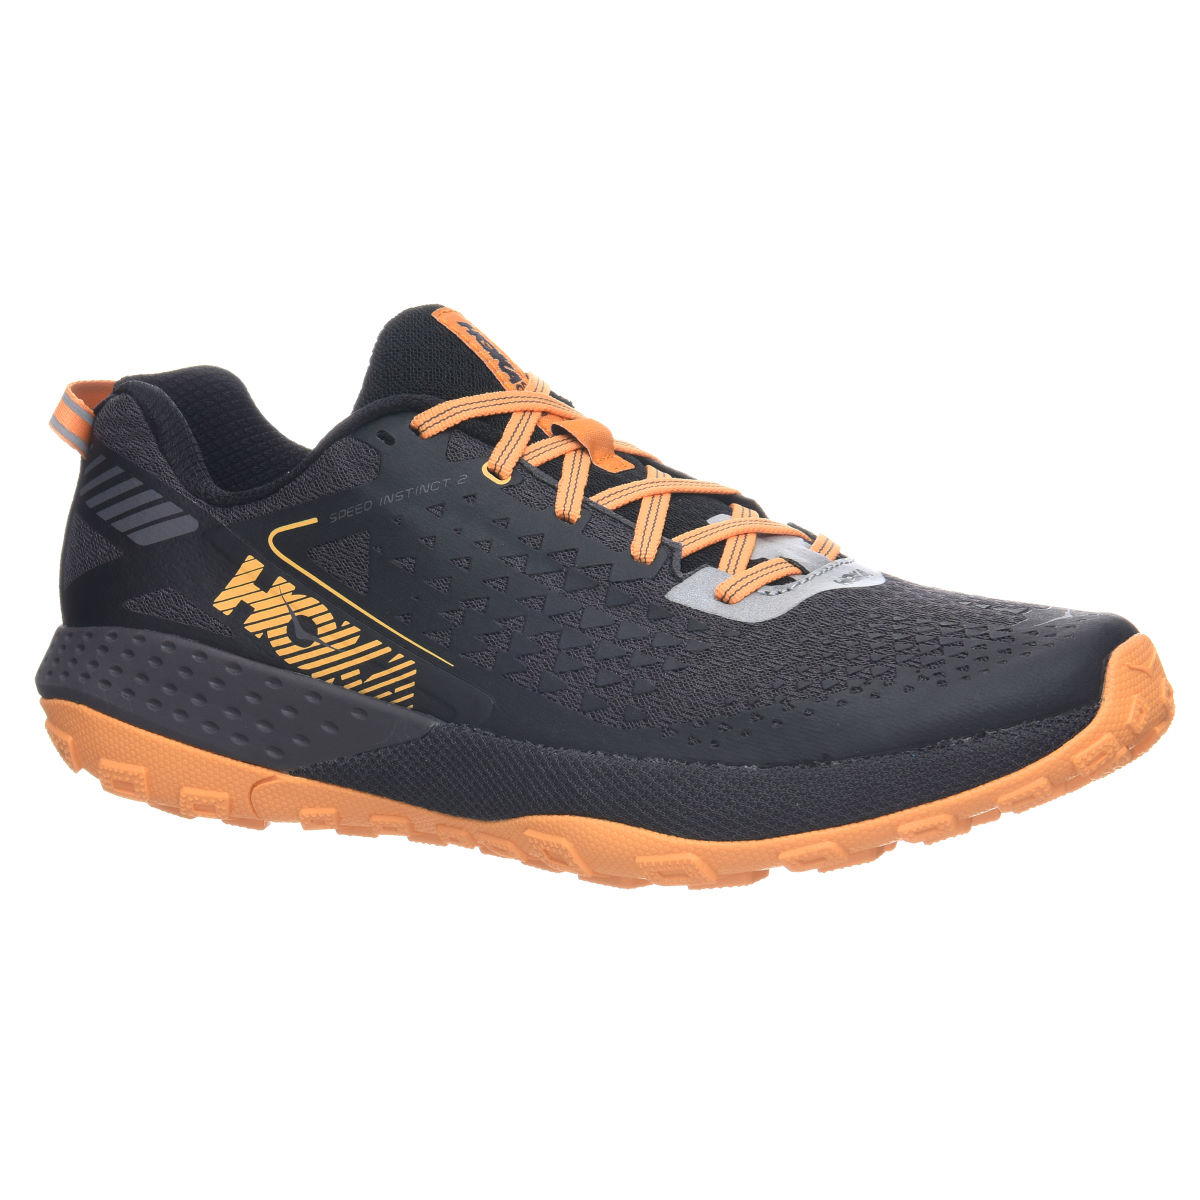 Hoka One One Speed Instinct 2 Shoes - Zapatillas de trail running